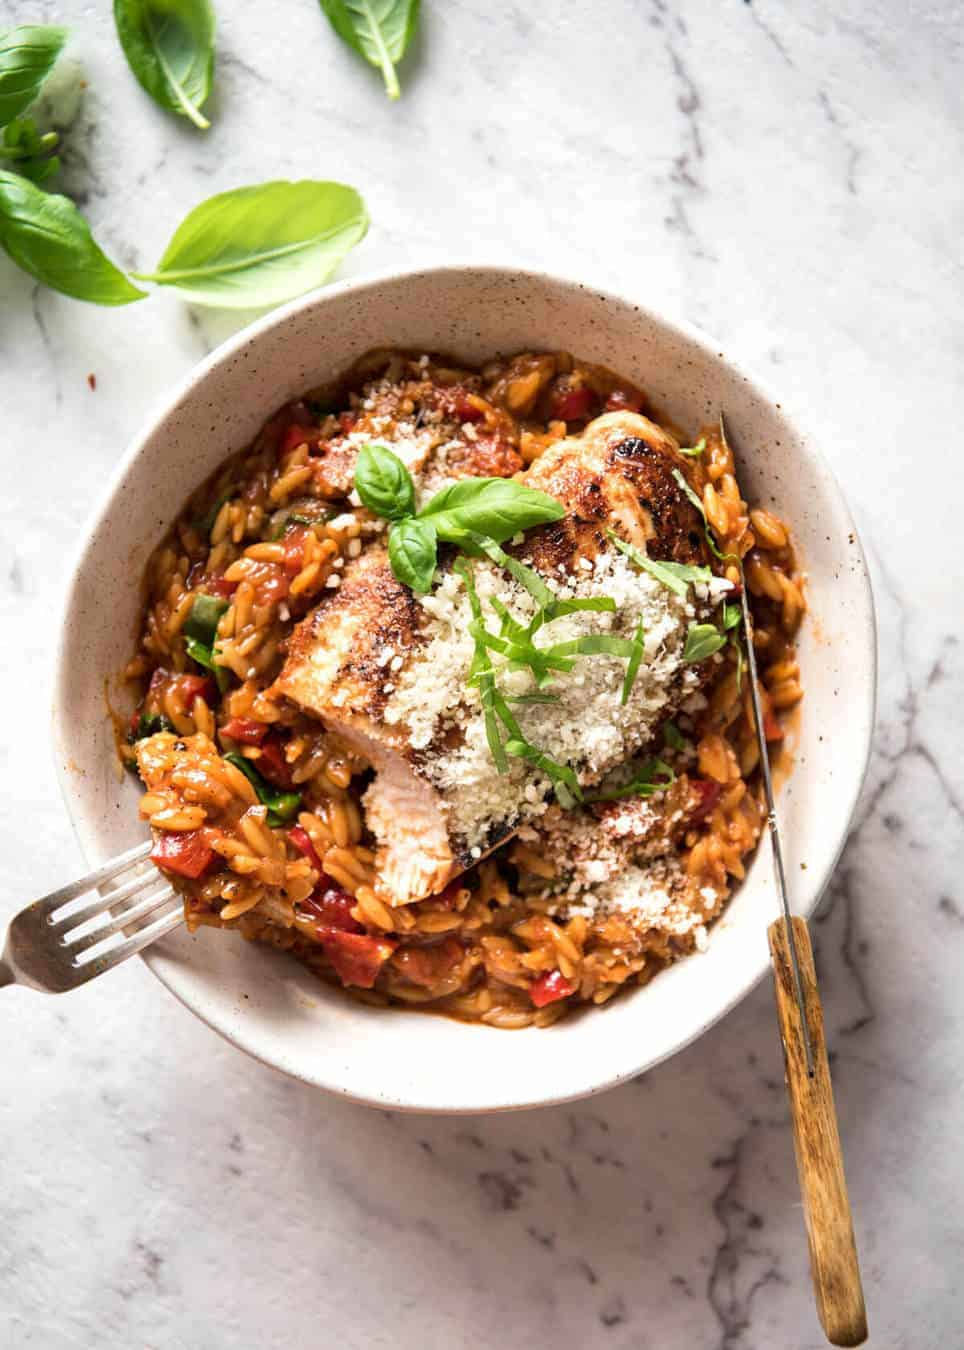 One pot italian chicken orzo risoni pasta recipetin eats risoni pasta recipe with chicken italian chicken with a tomato basil risoni pasta recipe forumfinder Images